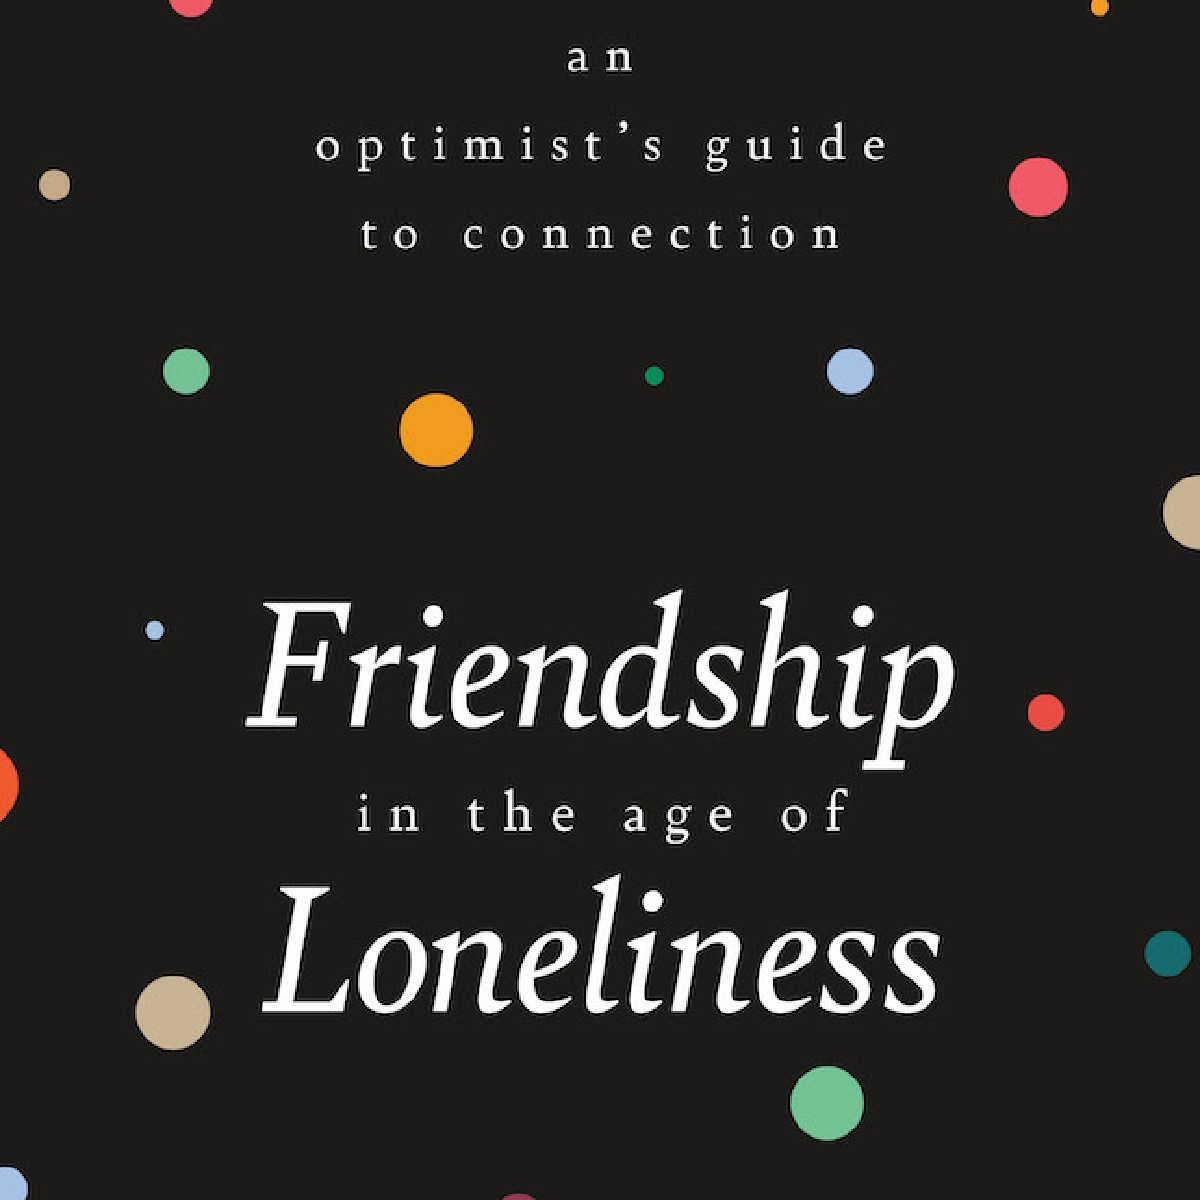 test Twitter Media - When Adam Smiley Poswolsky '05 entered his 30s, he began to experience more loneliness than usual. Using his talent for connecting with people, he worked to discover why so many people are lonely, and how to achieve the opposite.  https://t.co/yqdpcqi0HA https://t.co/Hwq2wZHAaJ